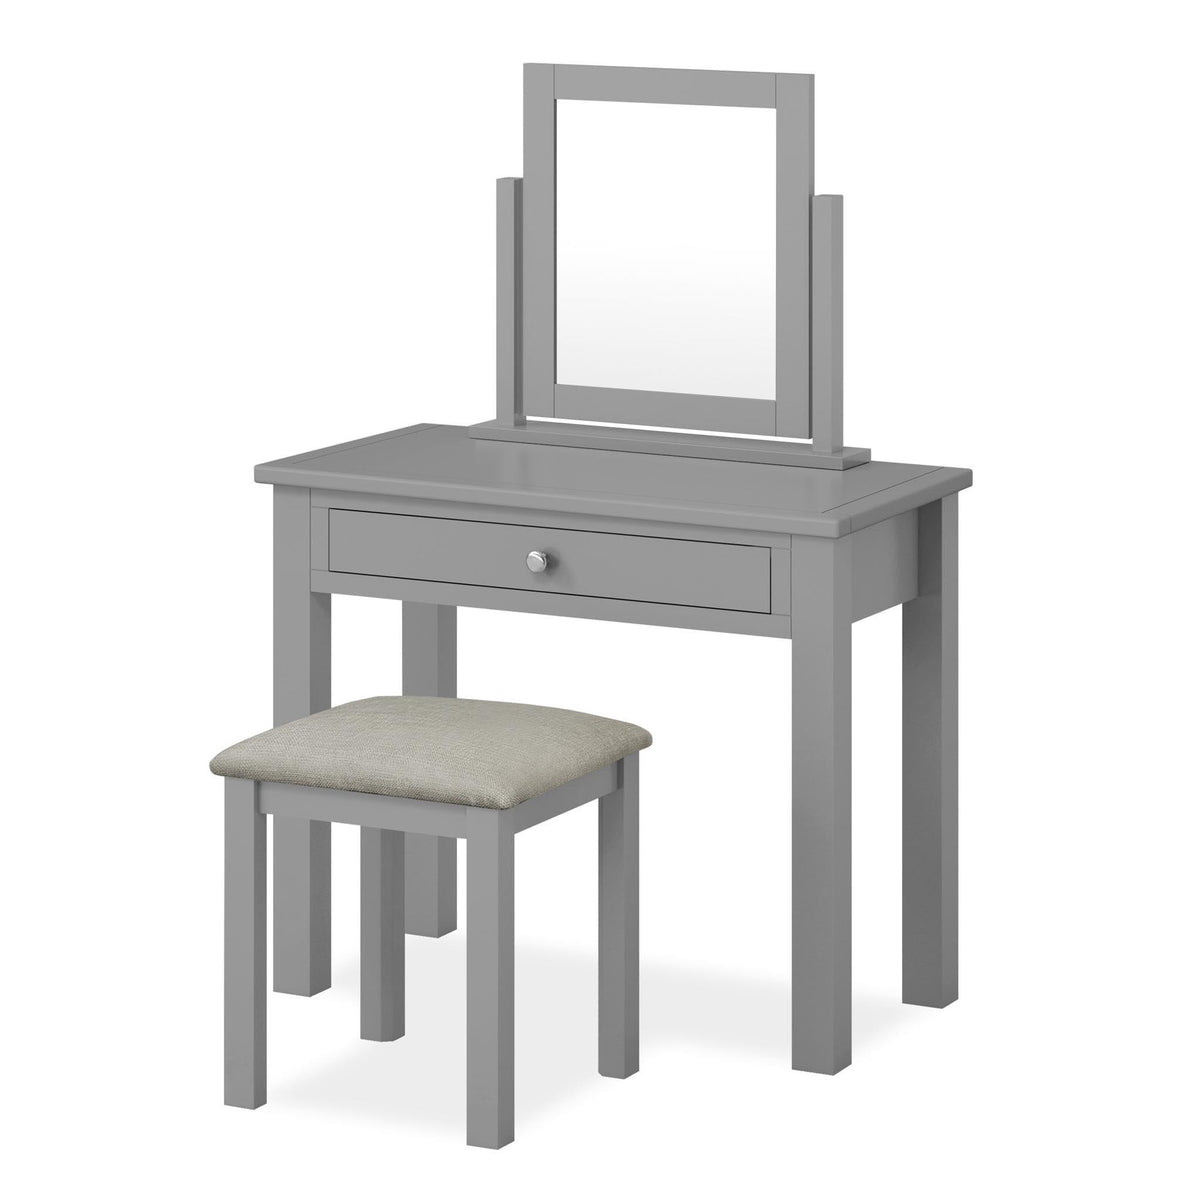 The Cornish Grey Dressing Table Set with Stool and Vanity Mirror